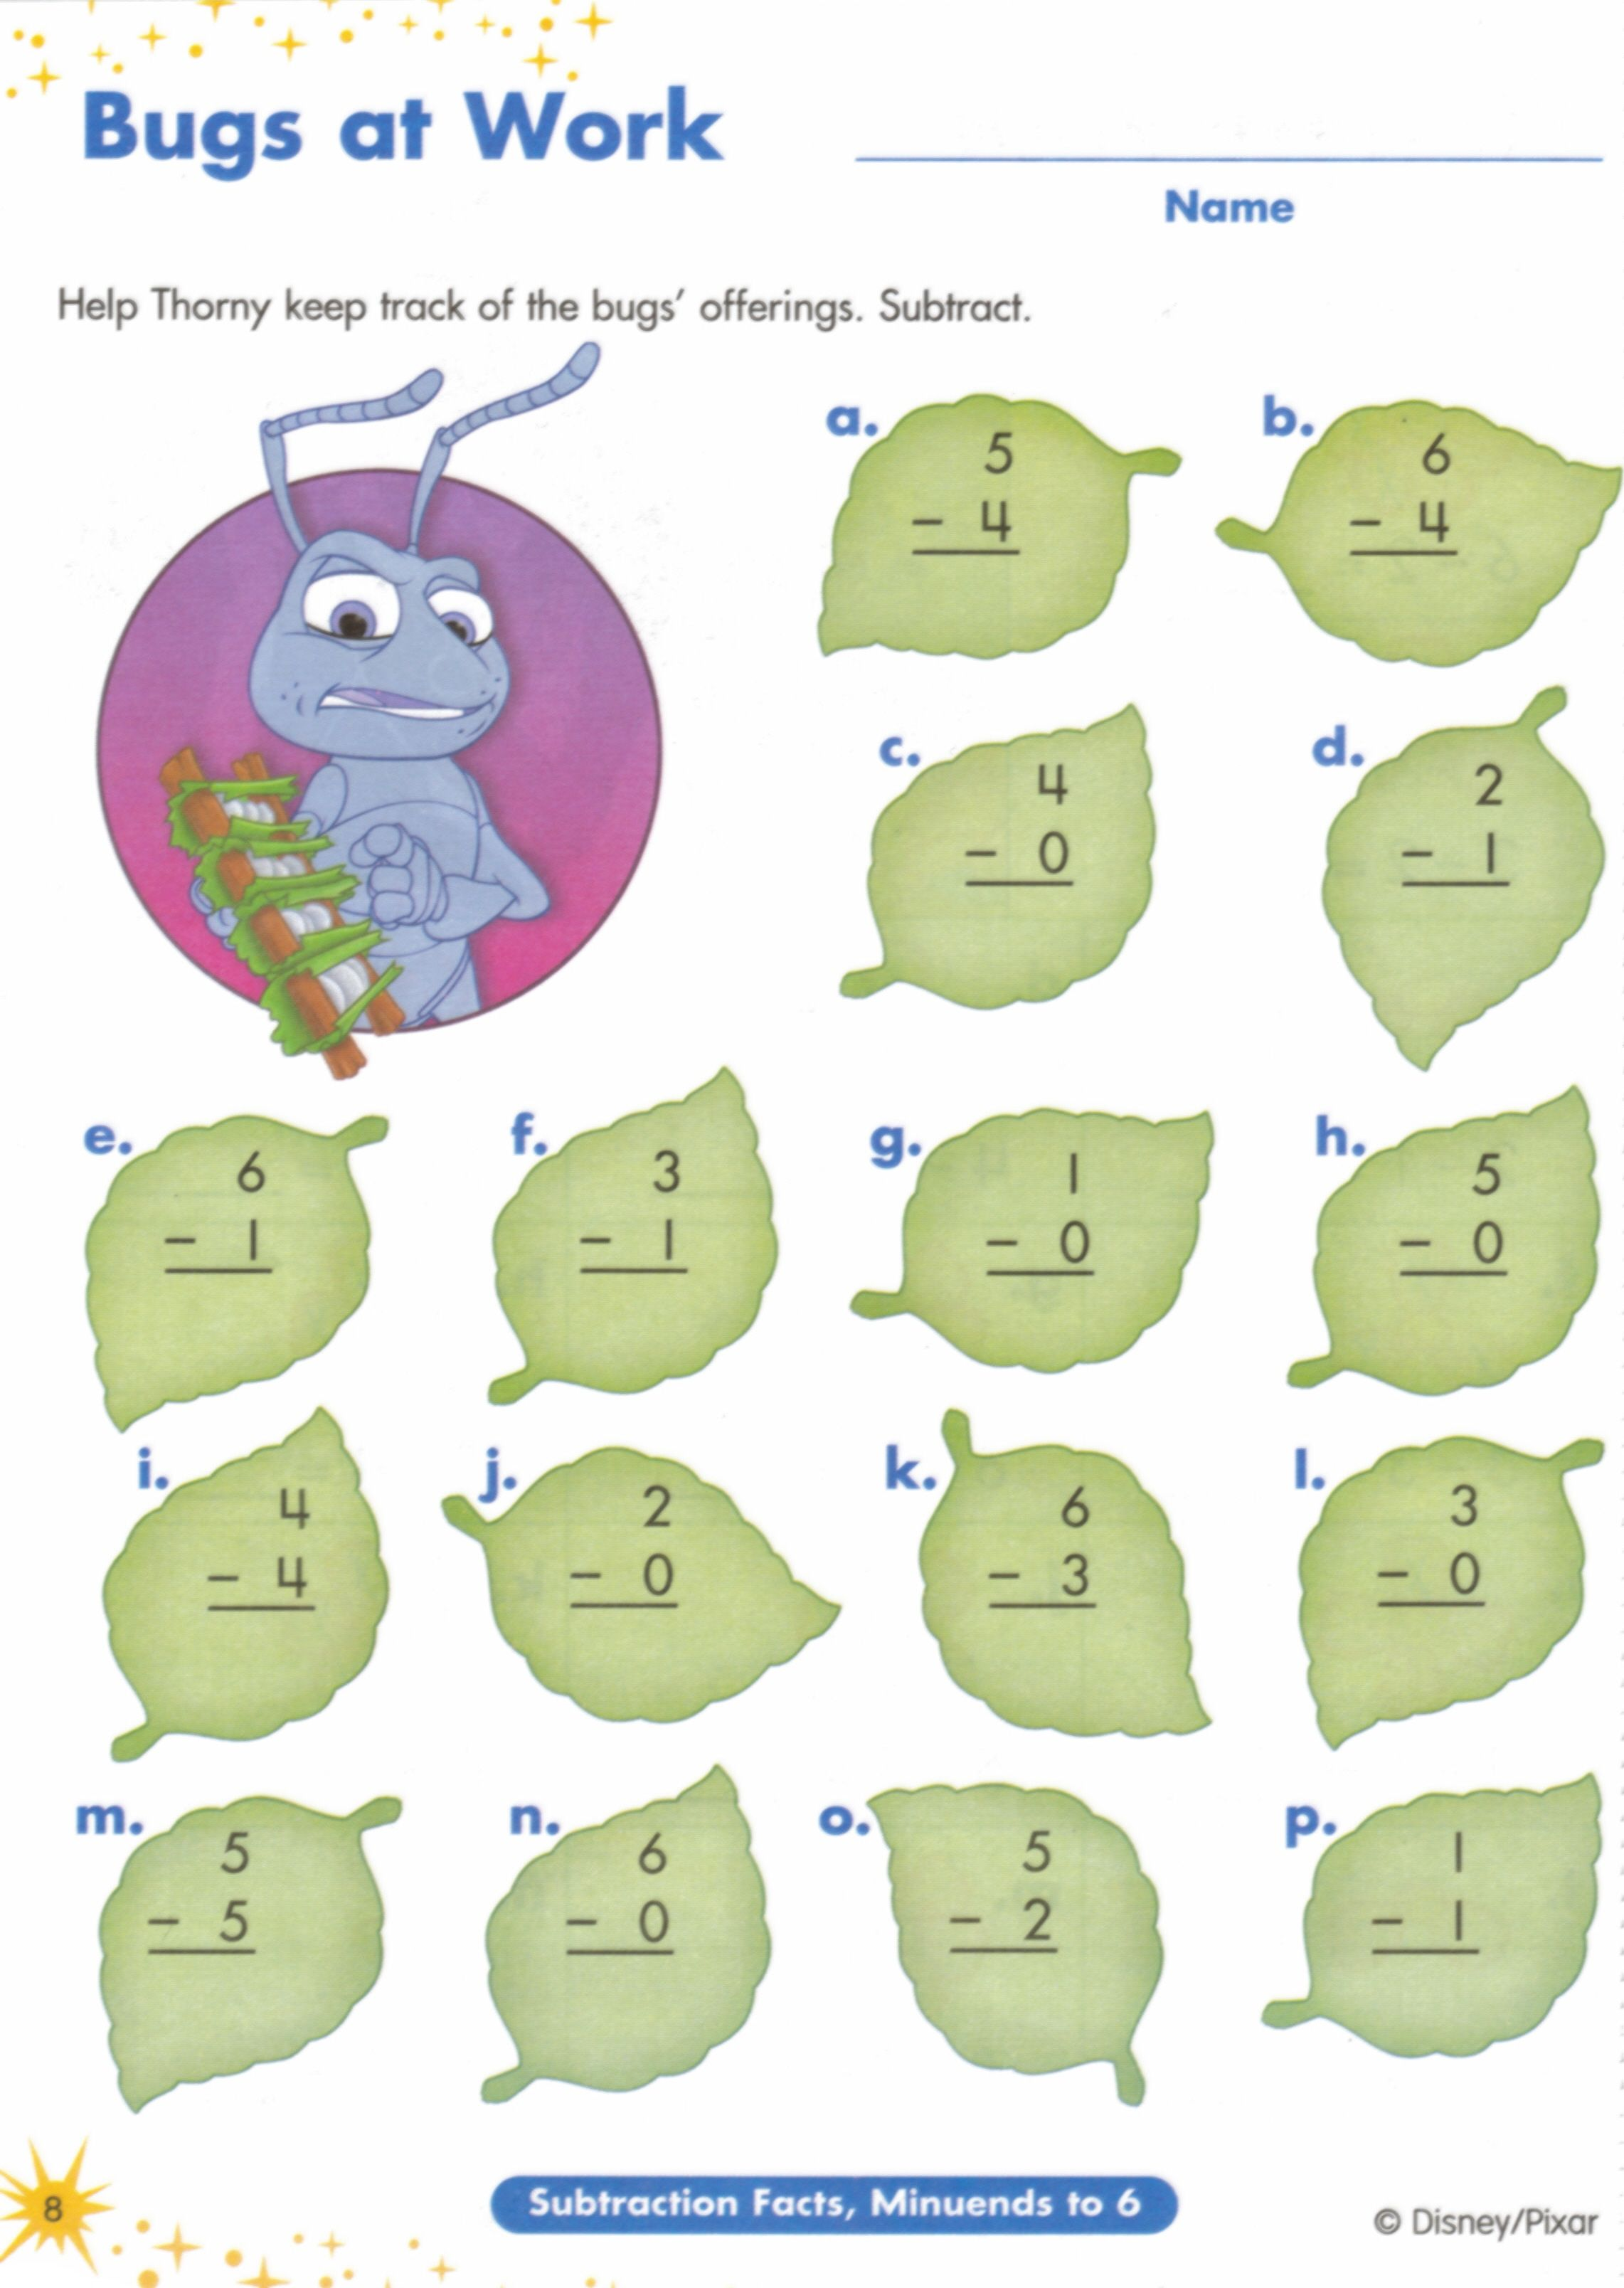 Proatmealus  Marvelous  Images About Worksheets On Pinterest  Fun Facts For Kids  With Lovable  Images About Worksheets On Pinterest  Fun Facts For Kids Earth Day Worksheets And Jungles With Extraordinary Ten Commandments Worksheets For Kids Also Multiplication Worksheets Ks In Addition Subtraction And Addition Worksheets For First Grade And Division For Grade  Worksheets As Well As Naming Branched Alkanes Worksheet Additionally Free Worksheets For Year  From Pinterestcom With Proatmealus  Lovable  Images About Worksheets On Pinterest  Fun Facts For Kids  With Extraordinary  Images About Worksheets On Pinterest  Fun Facts For Kids Earth Day Worksheets And Jungles And Marvelous Ten Commandments Worksheets For Kids Also Multiplication Worksheets Ks In Addition Subtraction And Addition Worksheets For First Grade From Pinterestcom